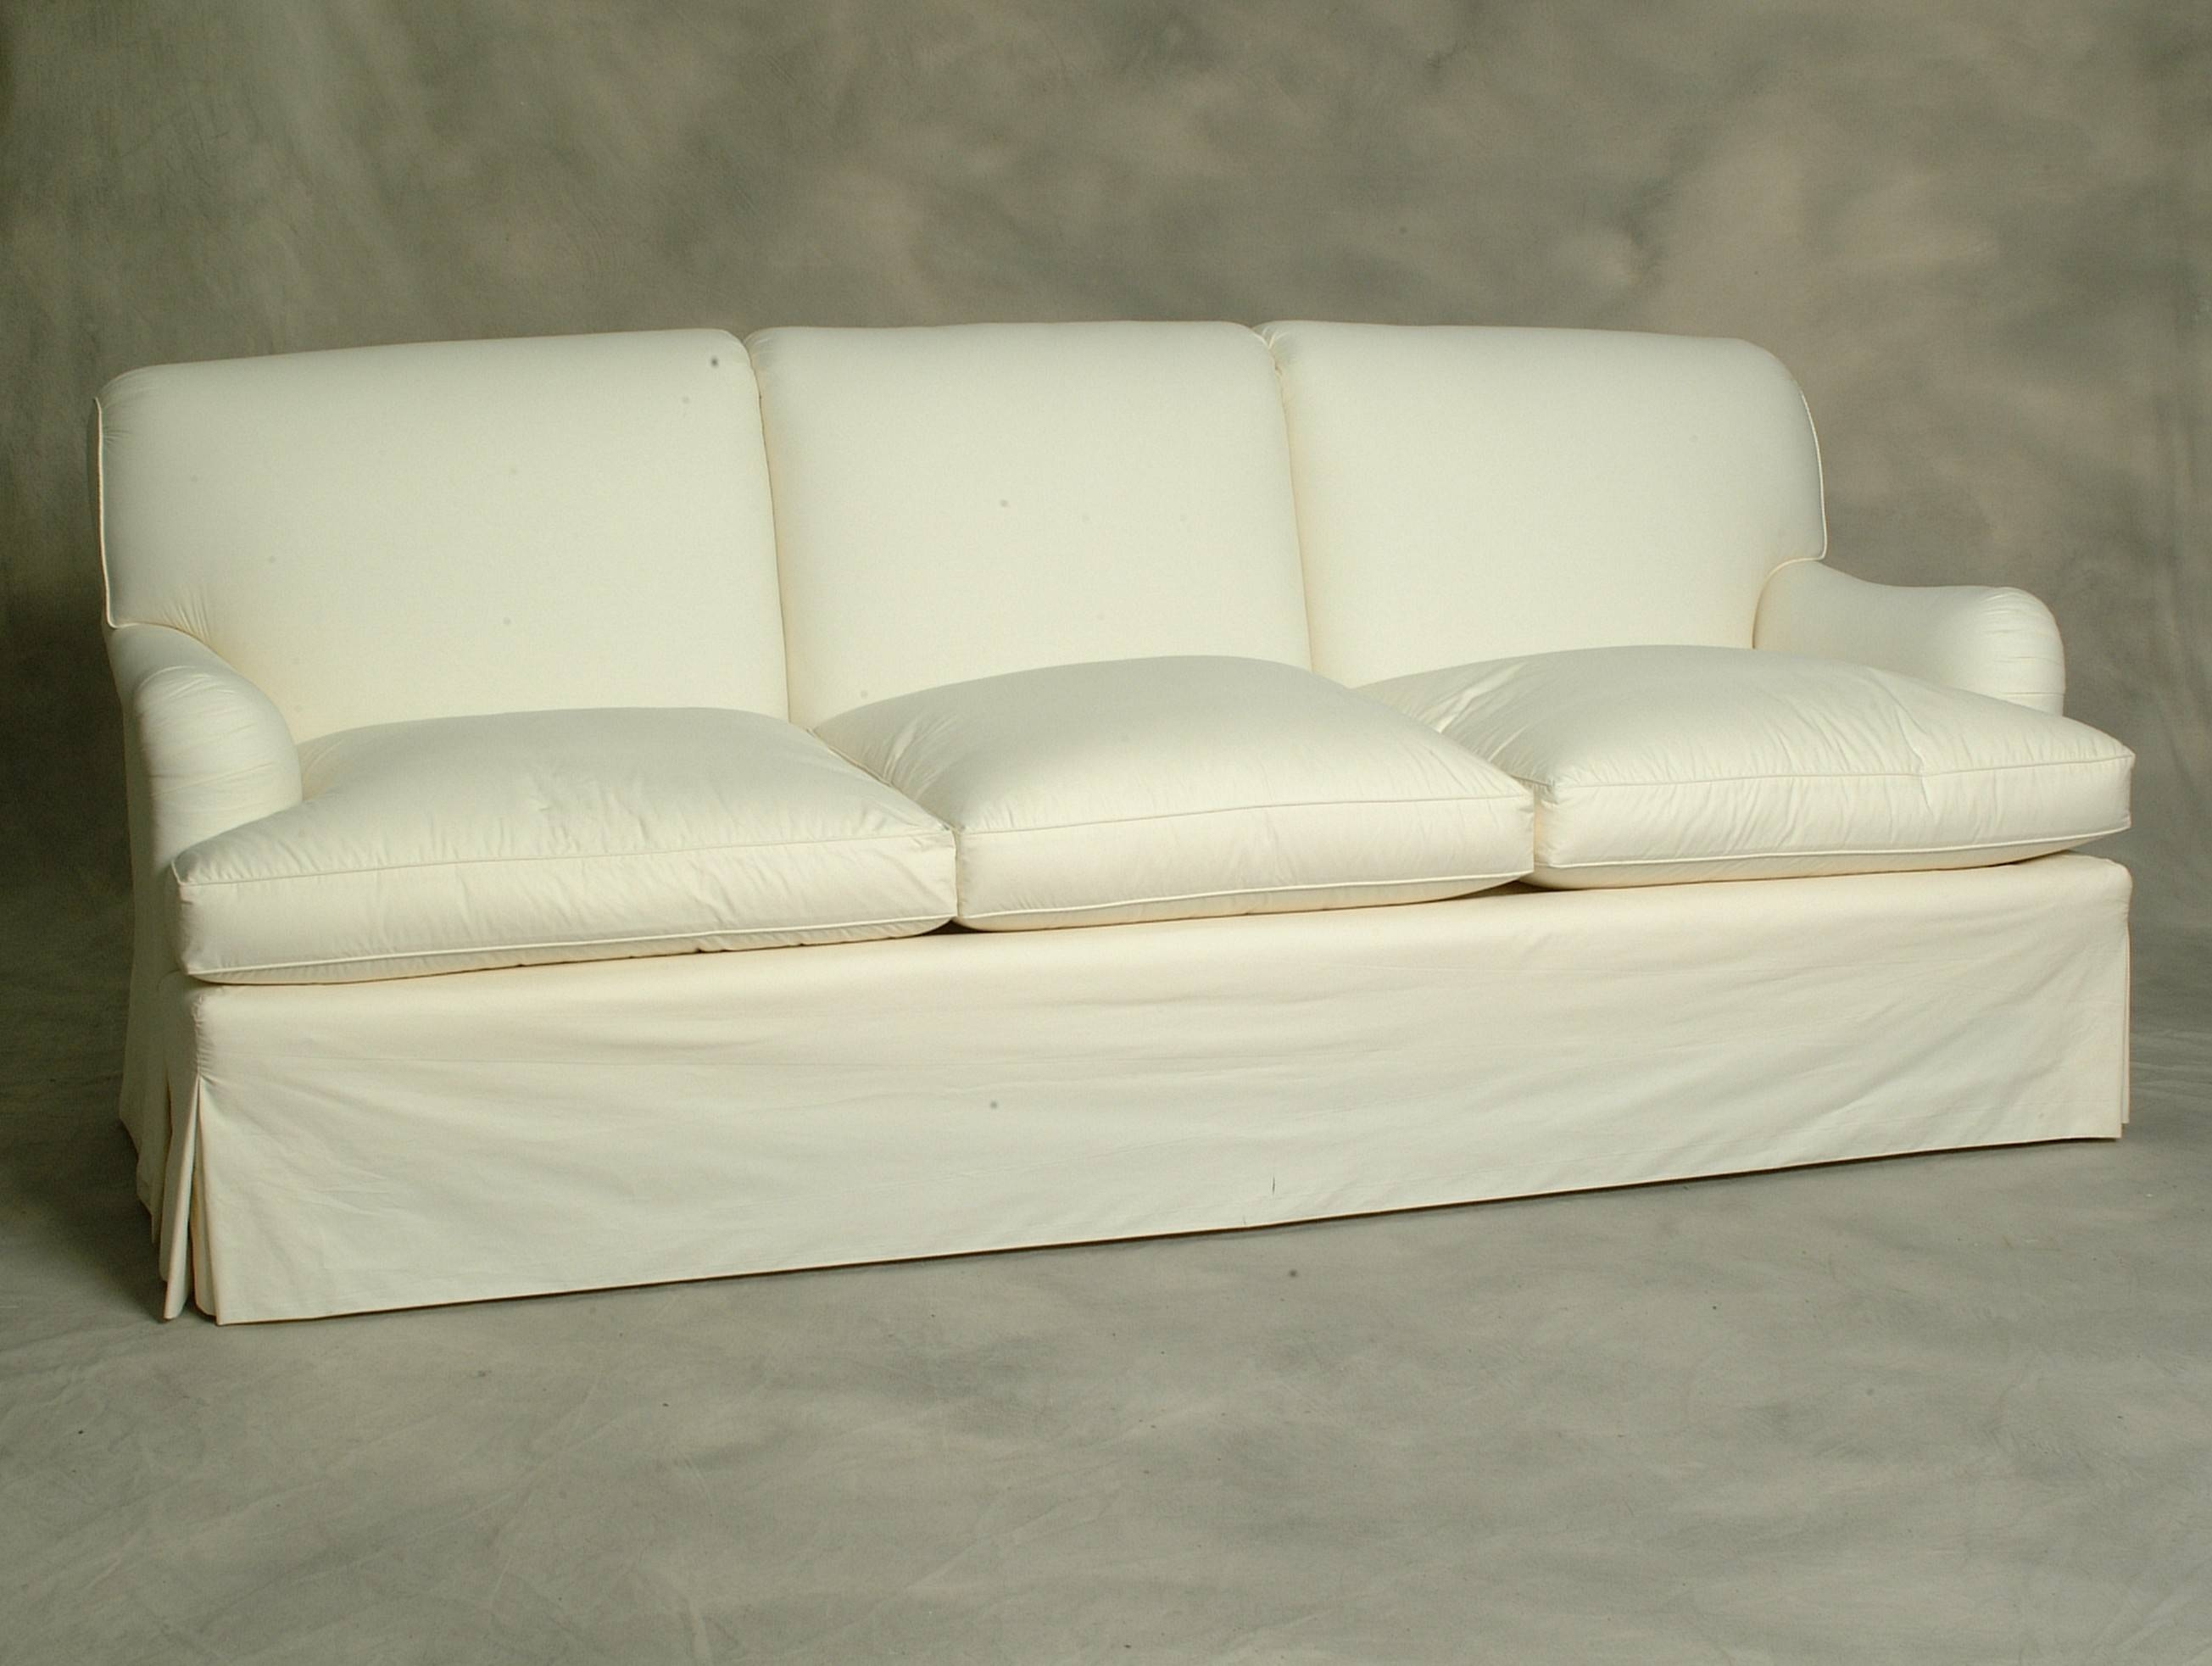 Custom Sofa Cushions Nyc | Cushions Decoration with regard to Custom Sofas Nyc (Image 11 of 30)